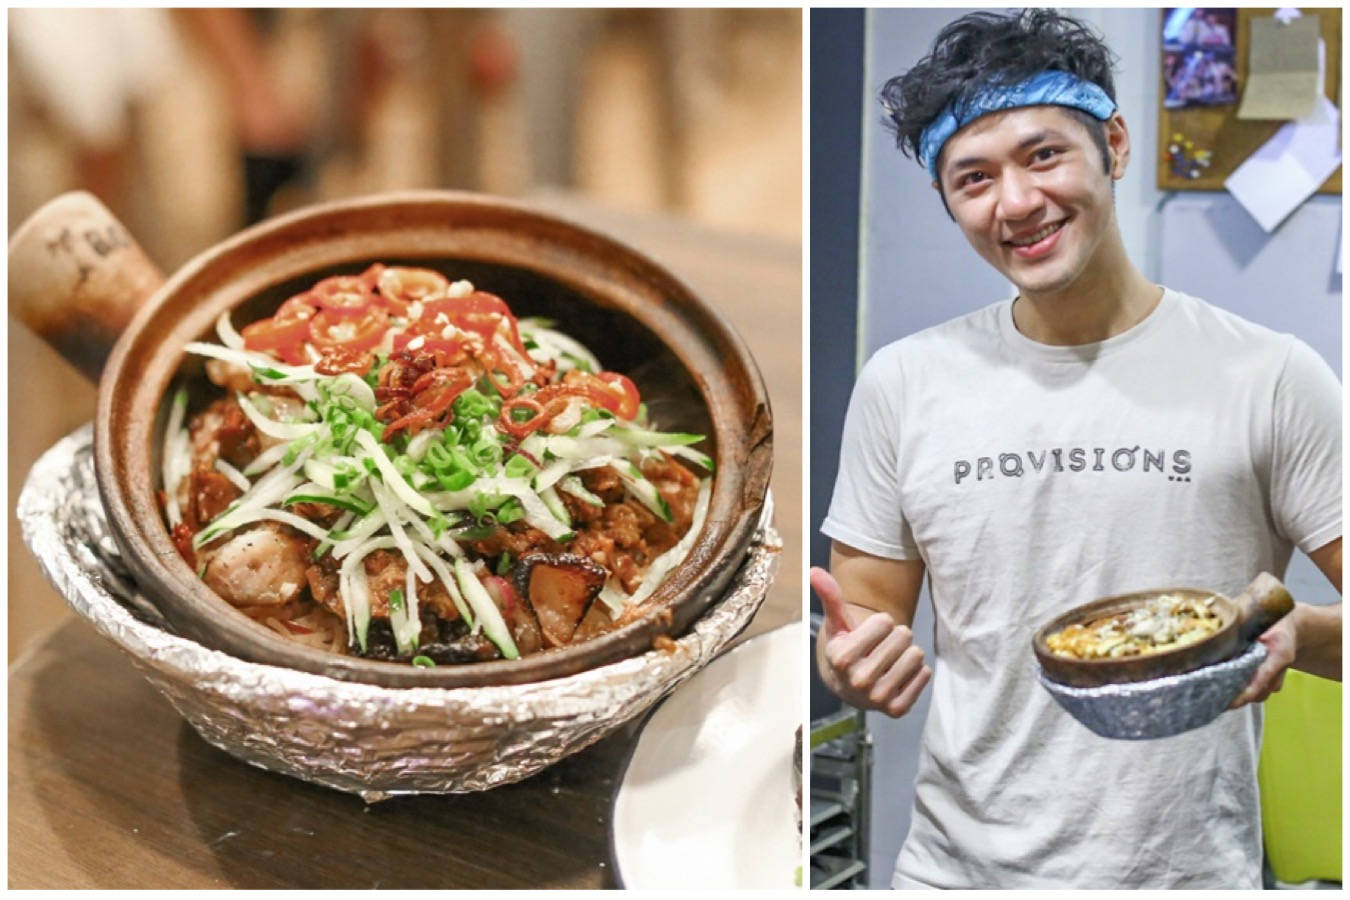 Provisions - Singapore's 1st Claypot Rice & Skewers Bar At Dempsey, With A Good-Looking Chef By The Way